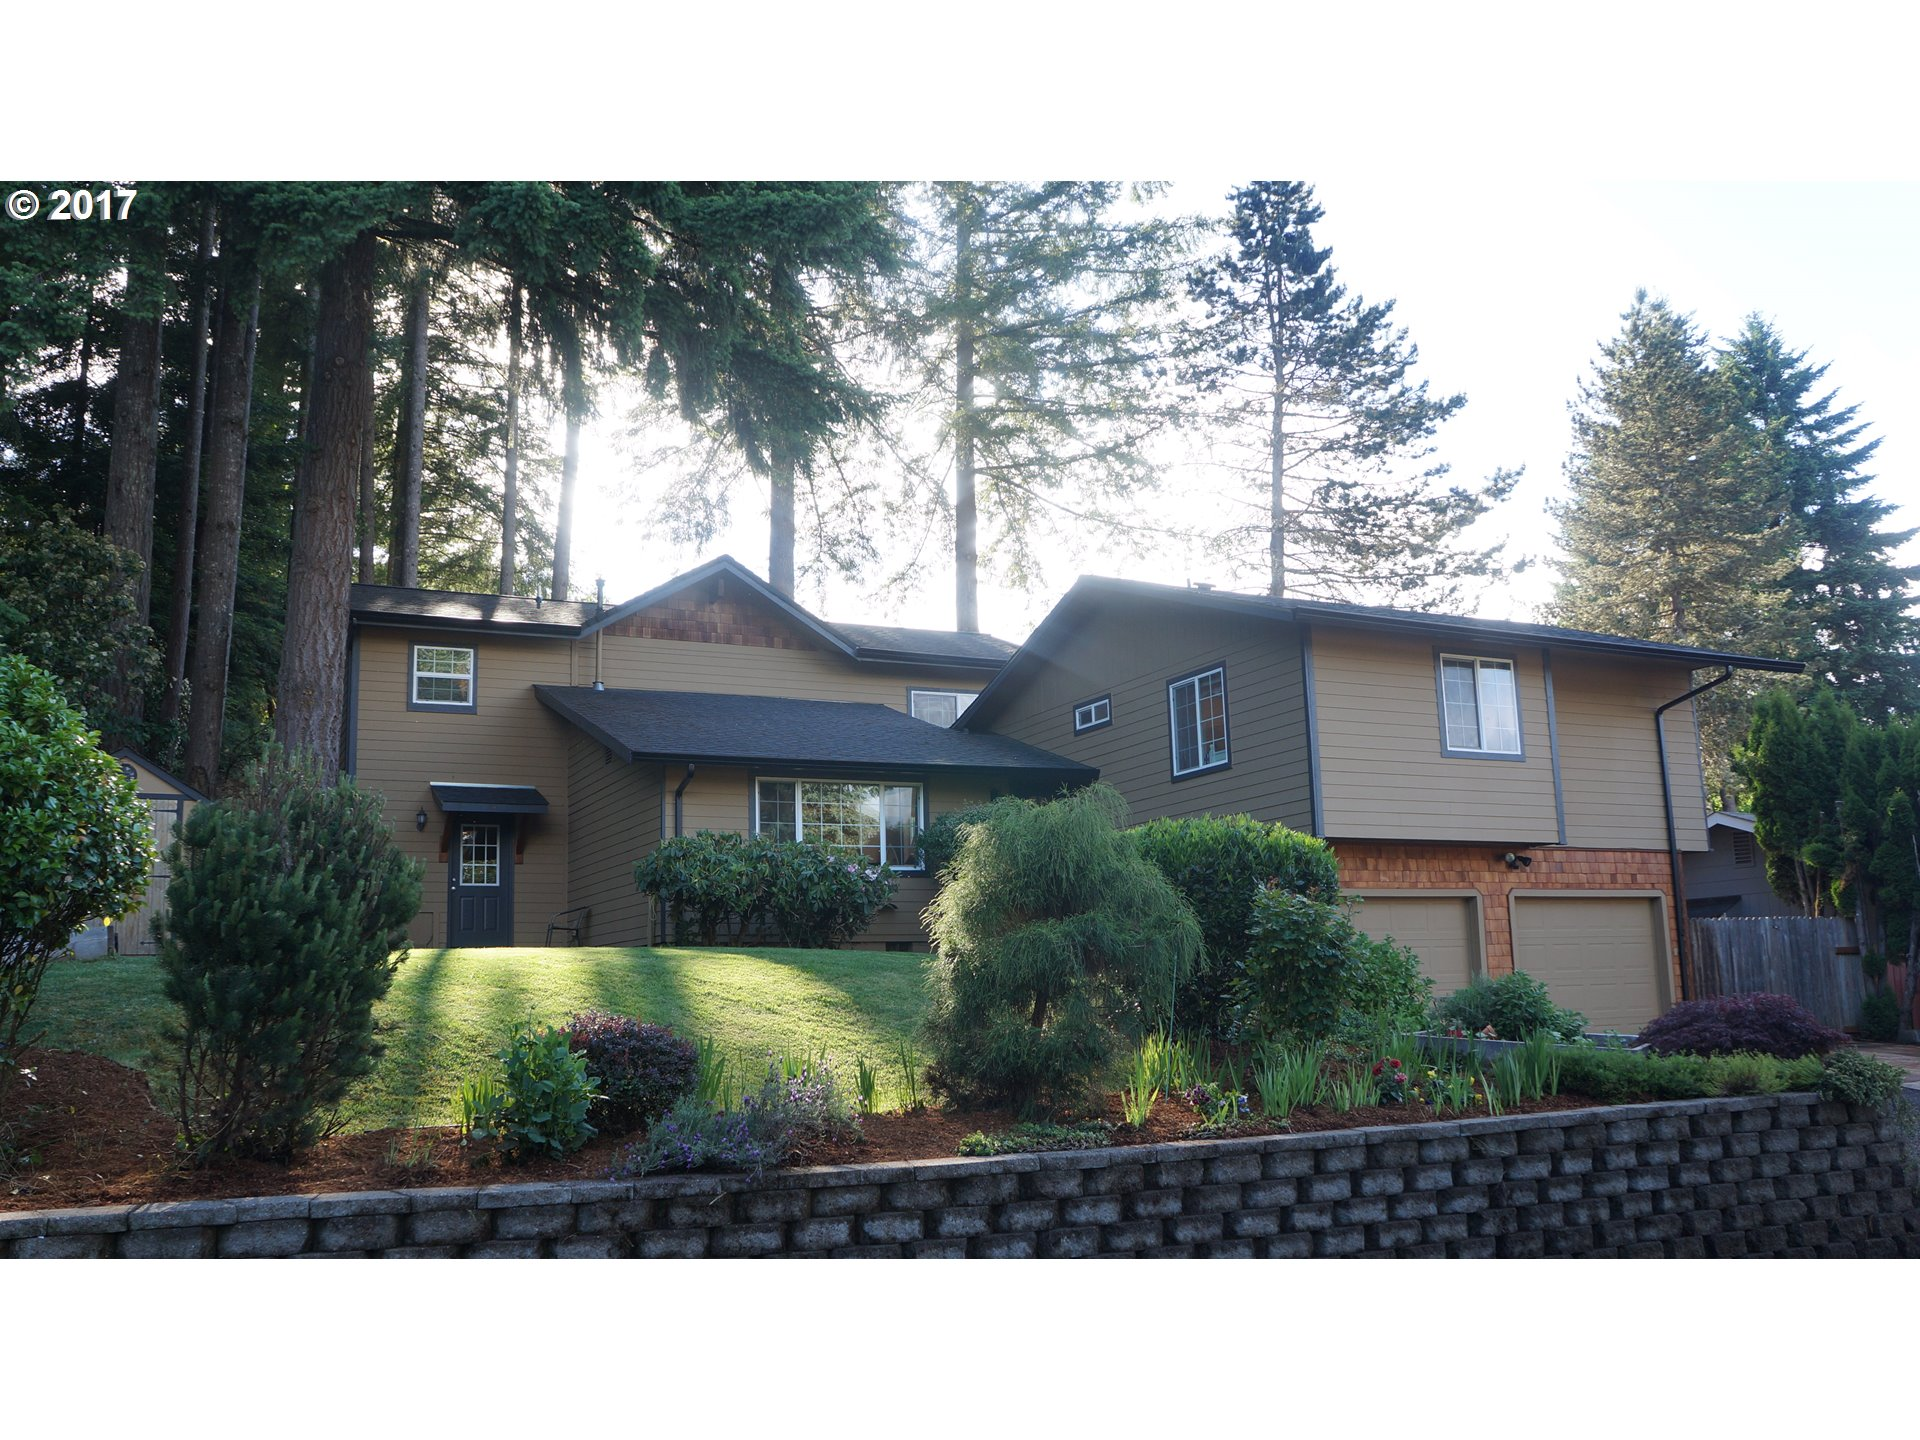 947 S R ST, Cottage Grove, OR 97424